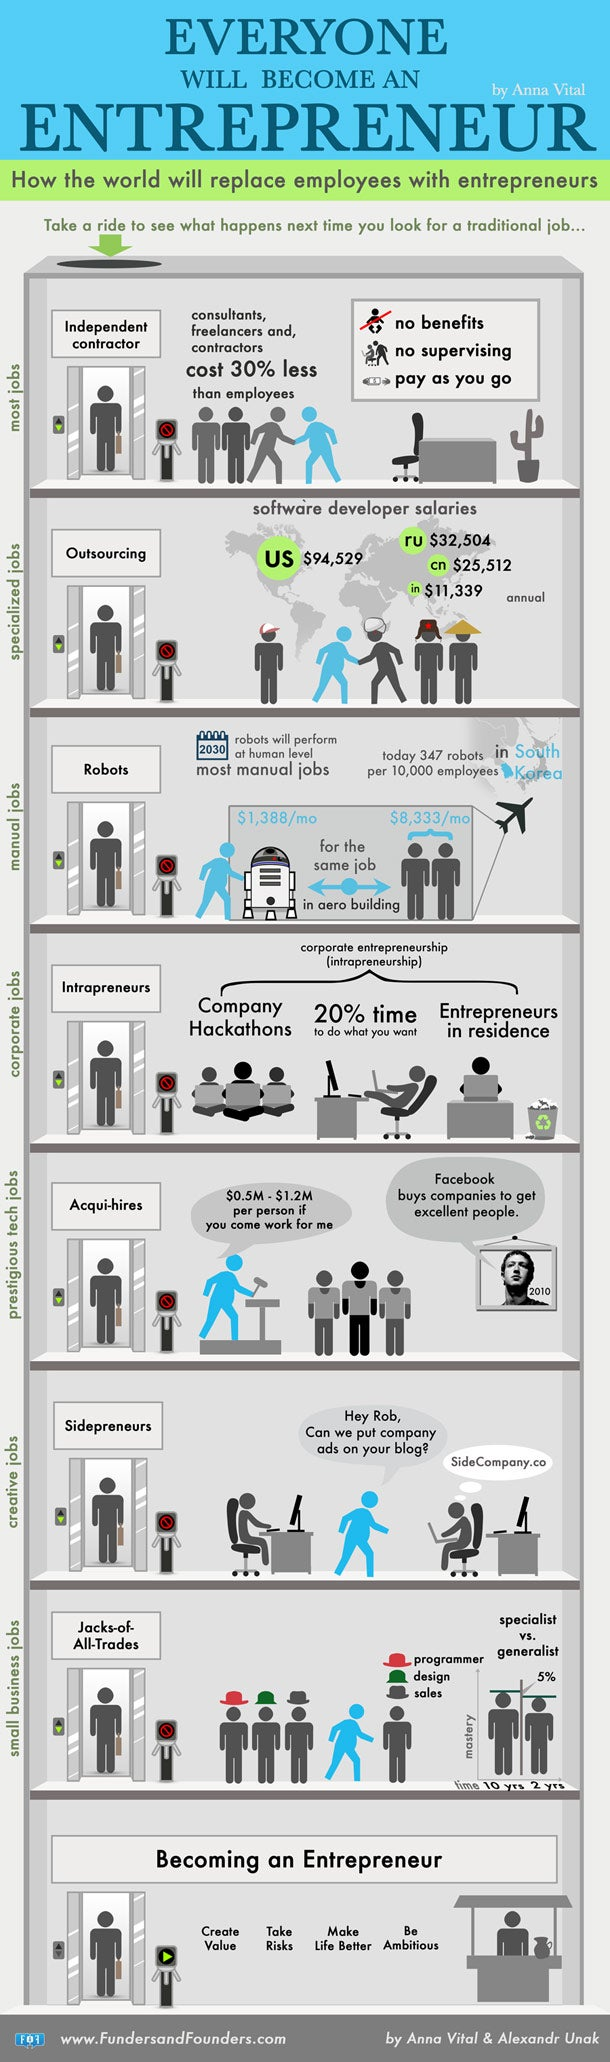 being an entrepreneur essay Most people think that being an entrepreneur is about having that big idea and it is to start something new, you need to have an idea that works: something people need, something they'll want.